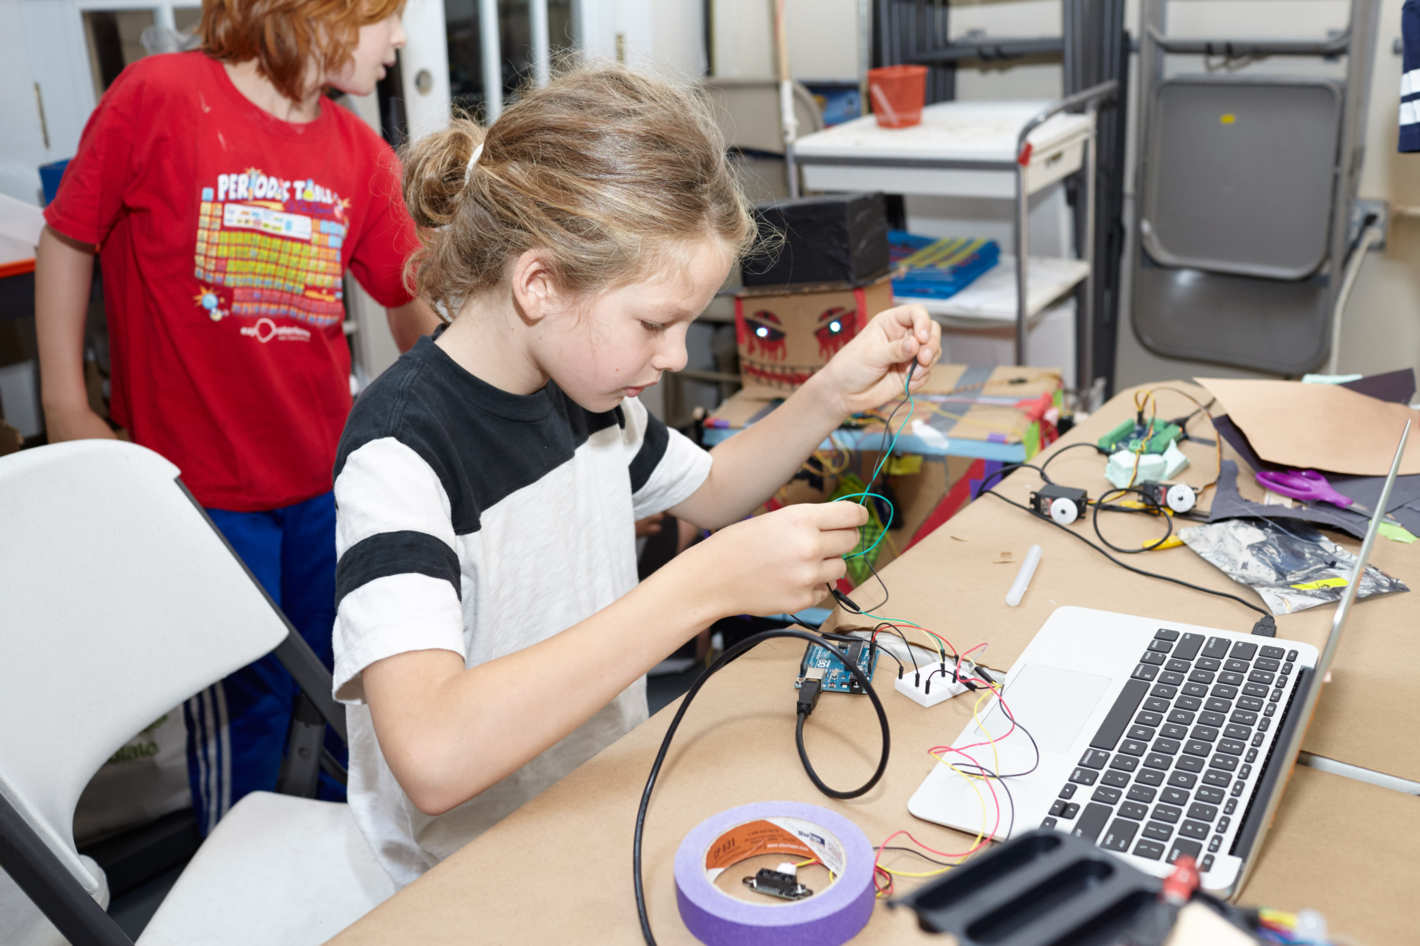 STEAM skills for a brighter future  - We teach STEAM skills (Science, Tech, Engineering, Art & Math) in an exciting and interactive environment for children aged 5-18. Learn more about our Programs